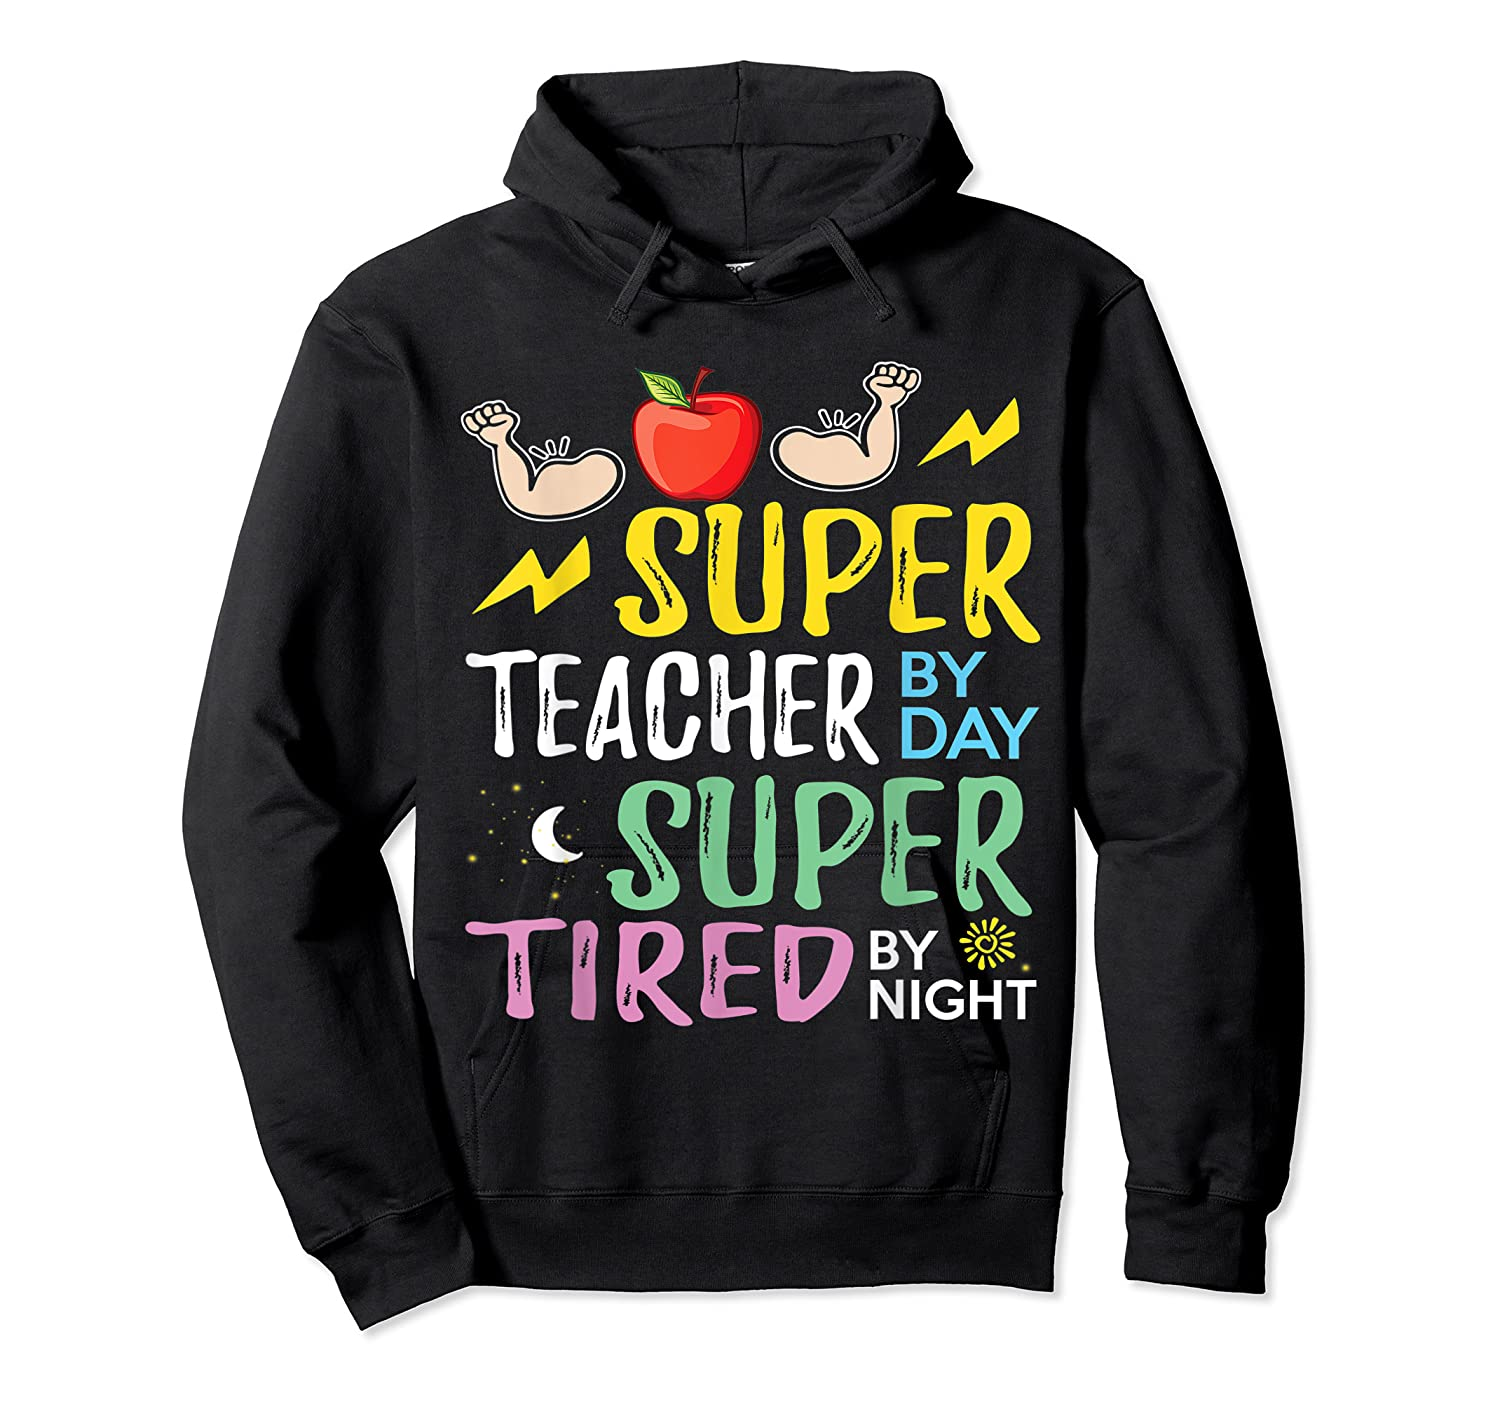 Super Tea By Day Super Tired By Night Cute Gift T-shirt Unisex Pullover Hoodie